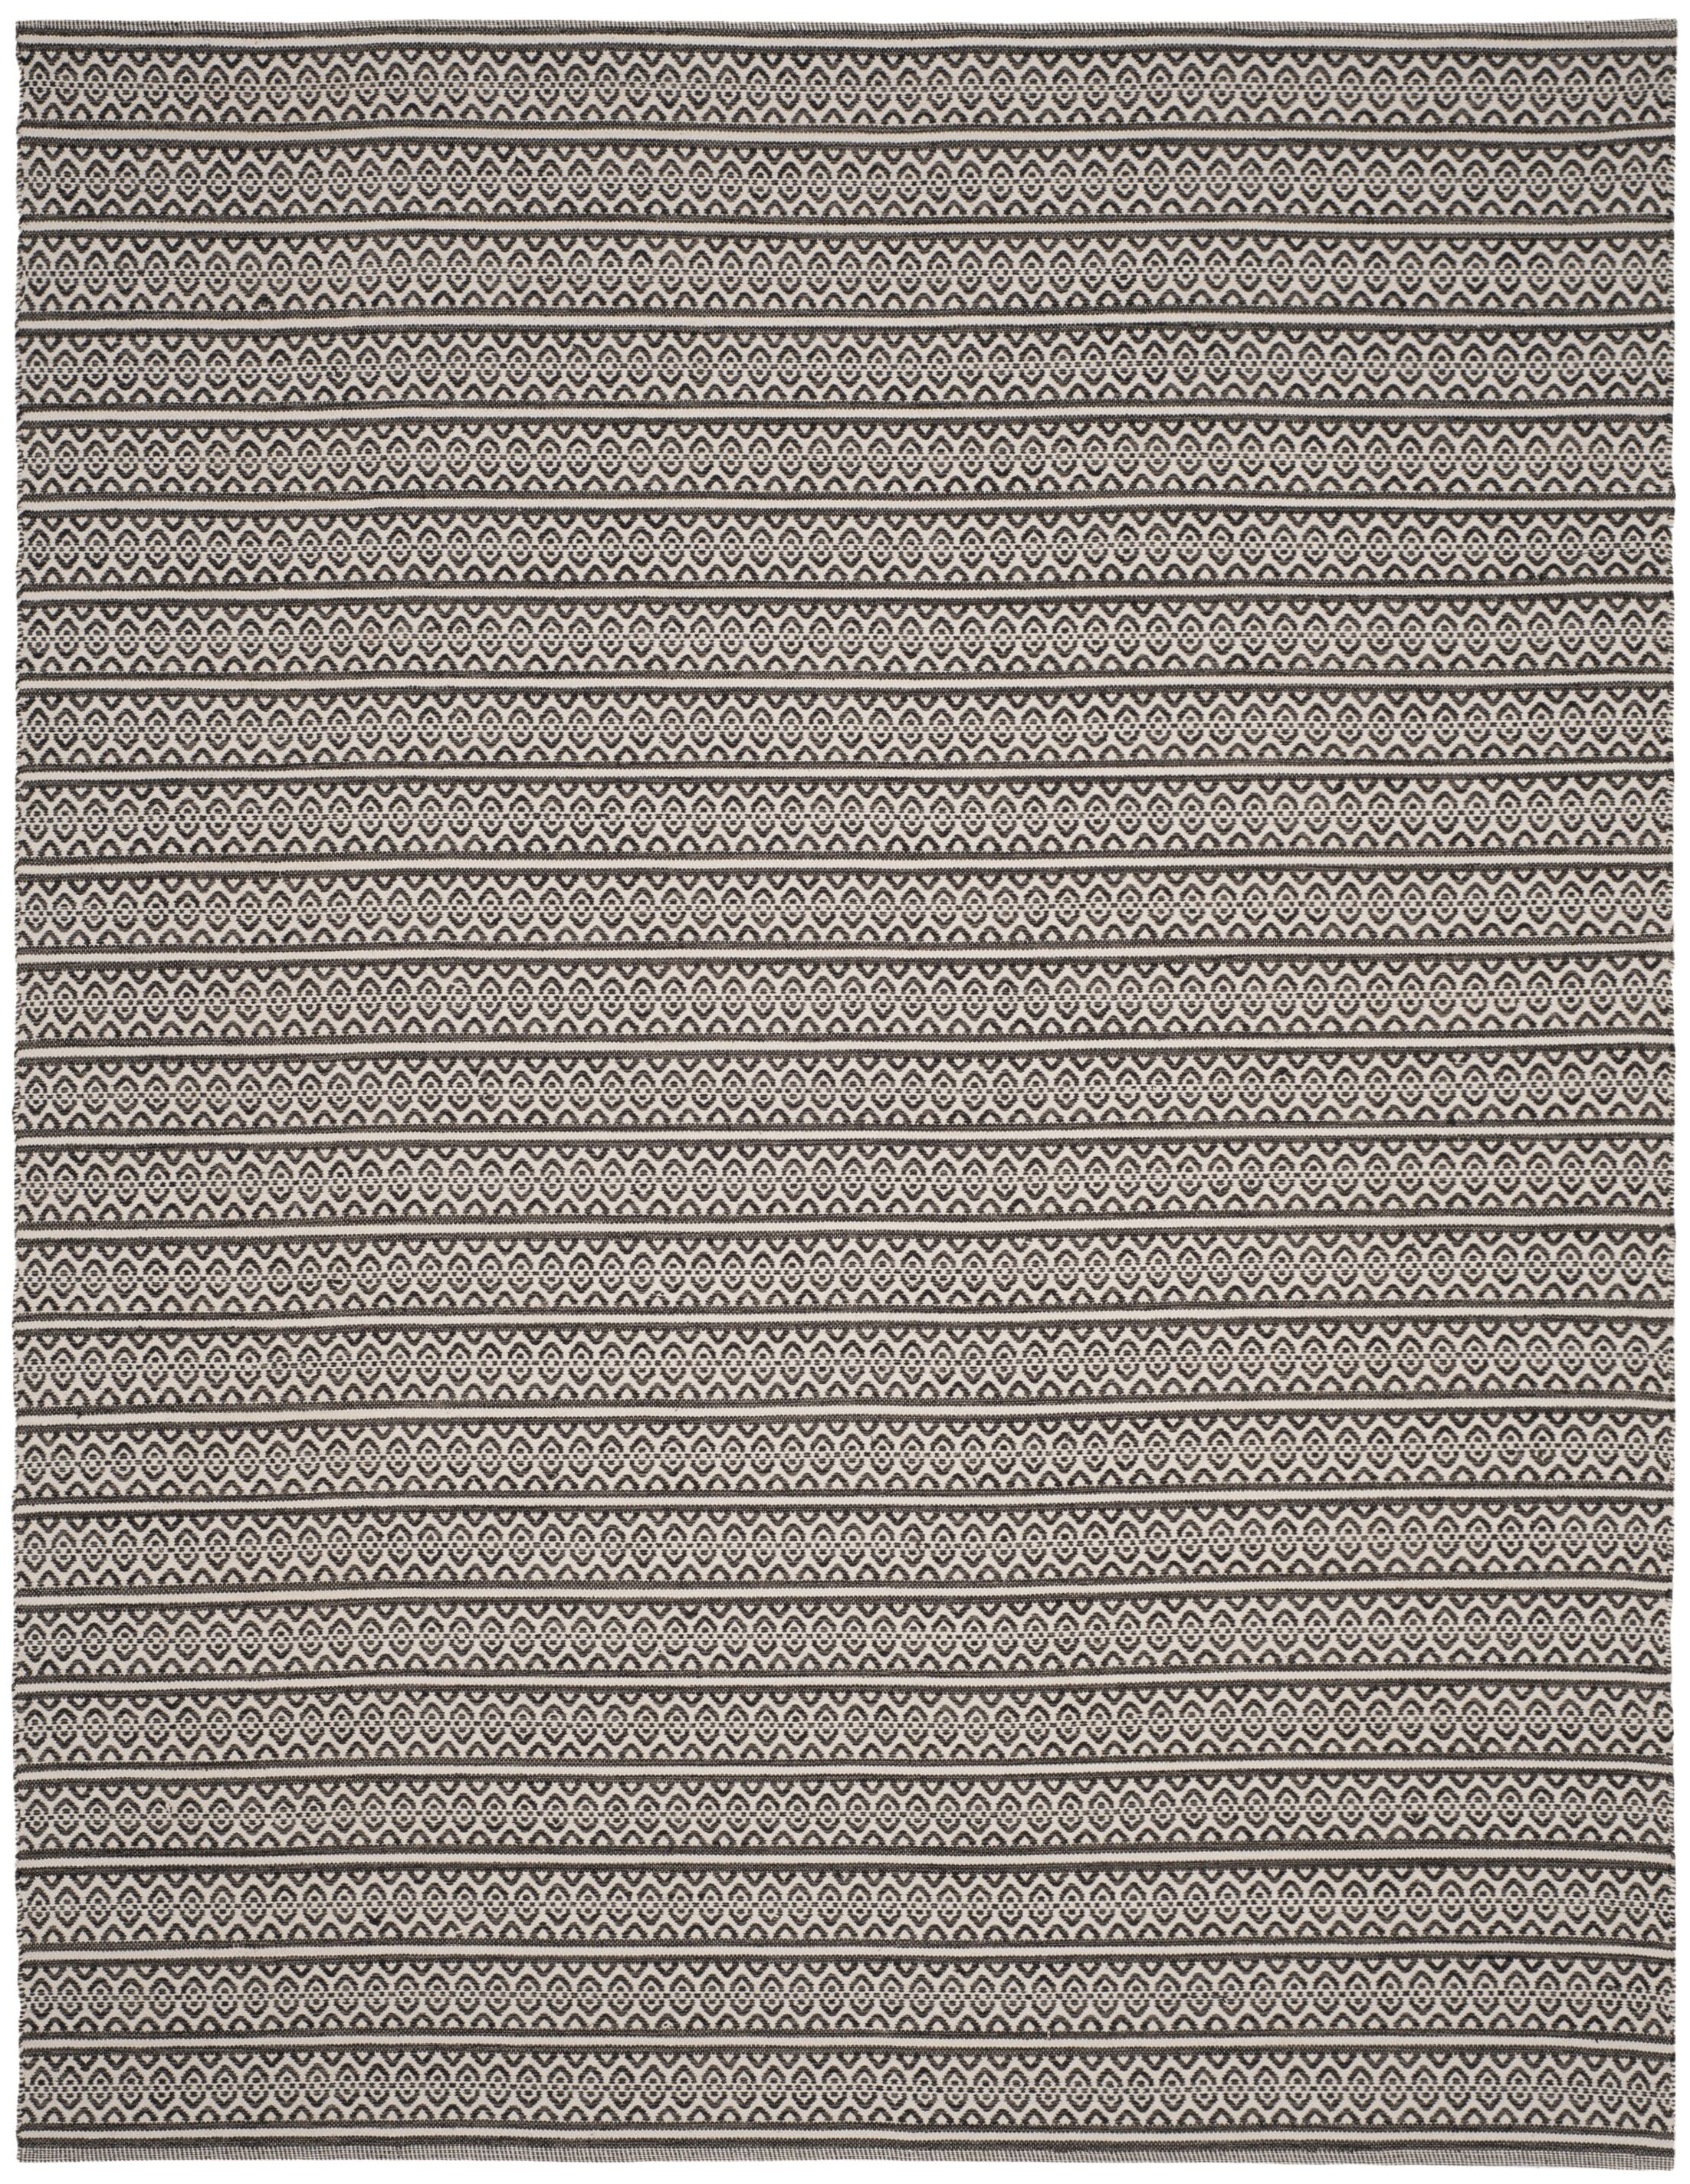 Oxbow Hand-Woven Cotton Ivory/Black Area Rug Rug Size: Rectangle 10' x 14'